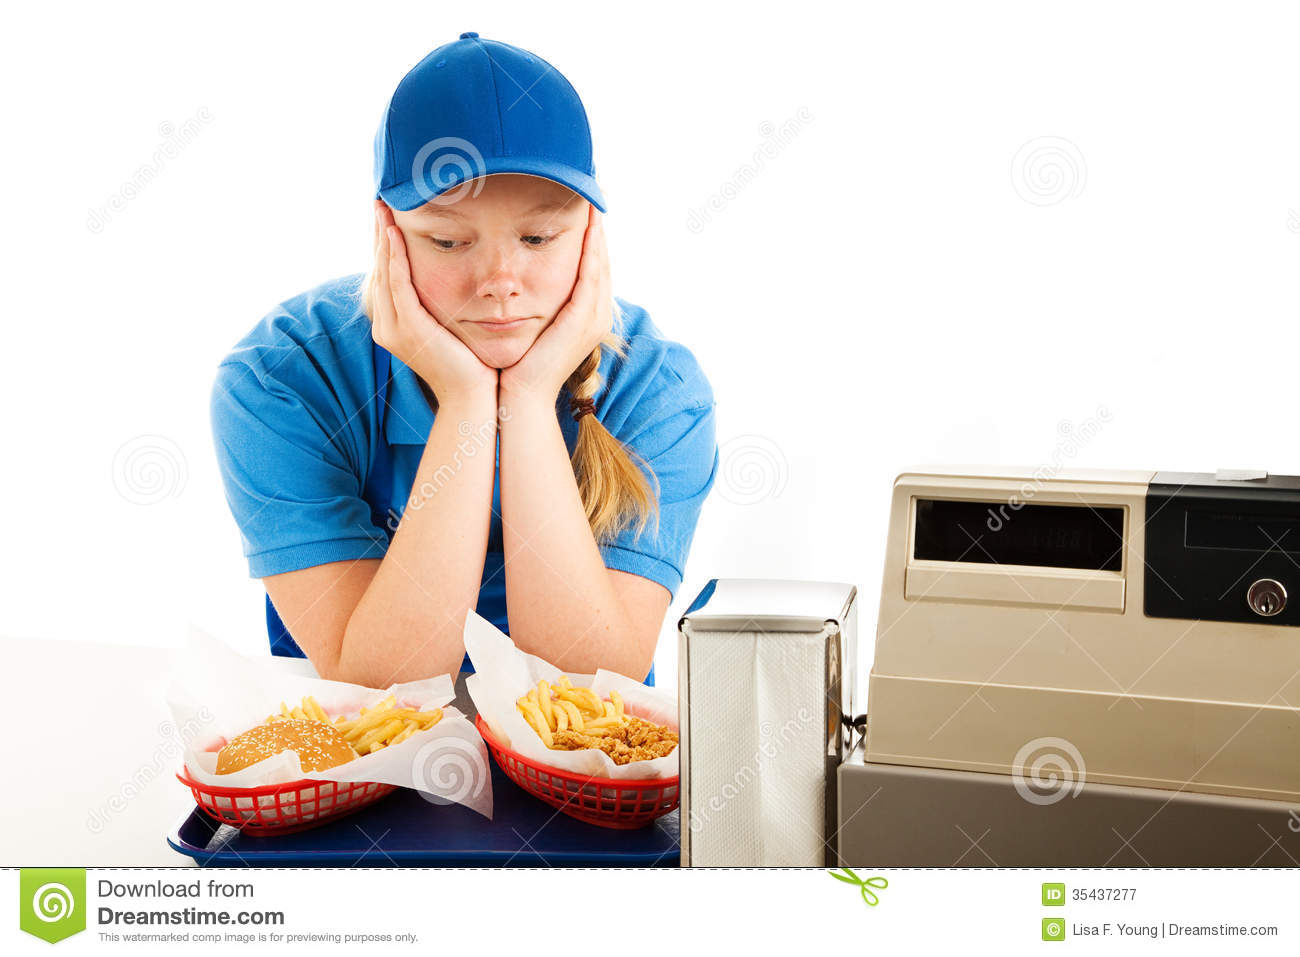 Depressed teen fast food server royalty free stock photography image